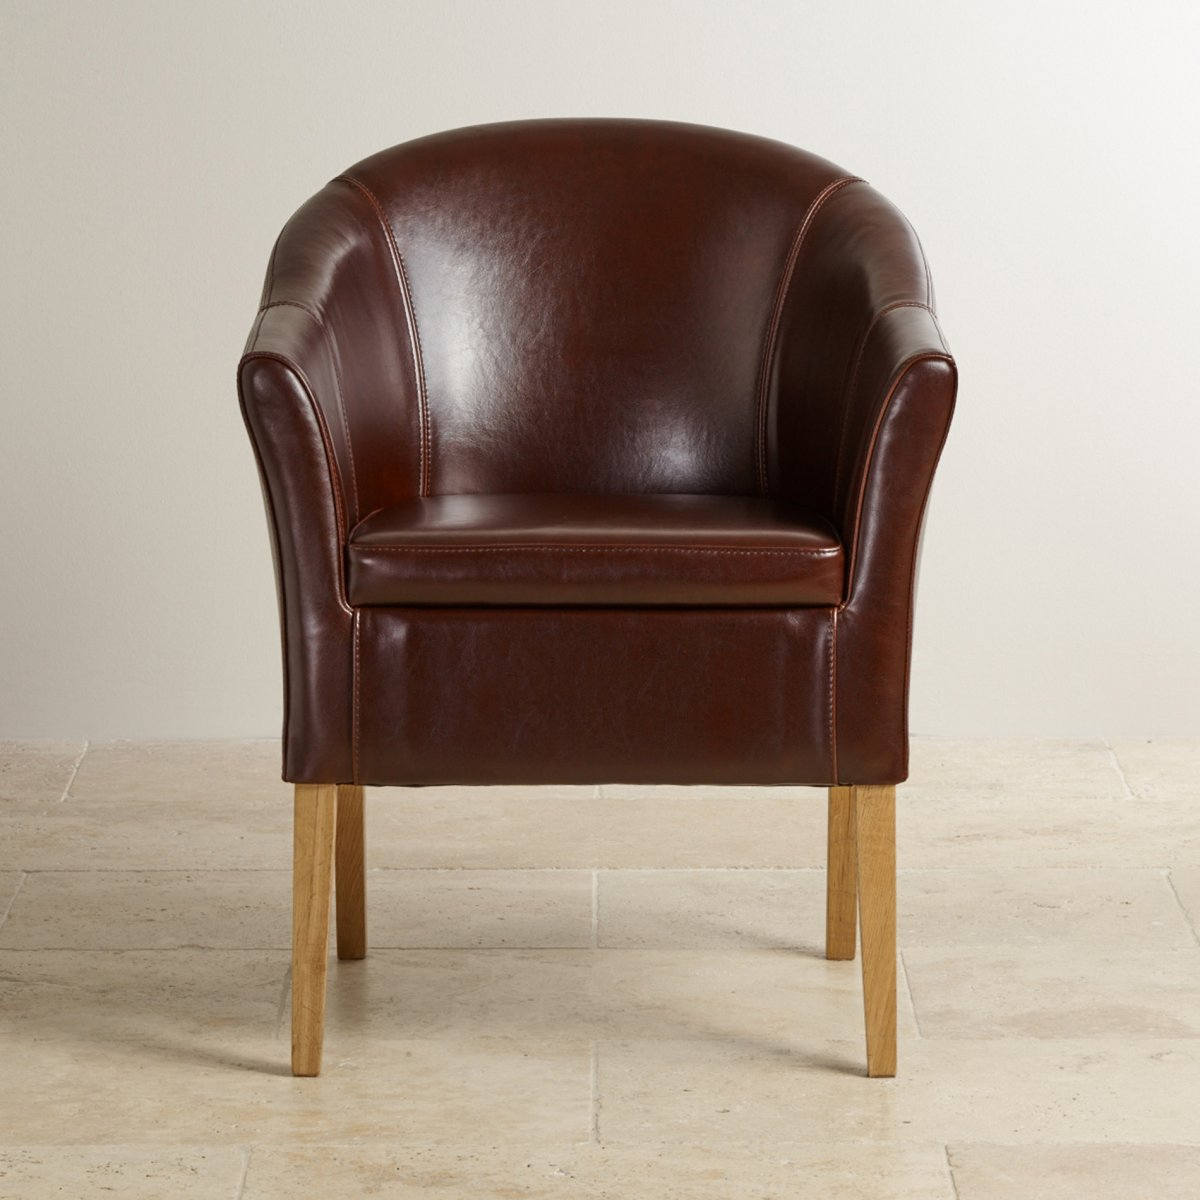 leather tub chair covers hire aberdeen brown with solid oak legs